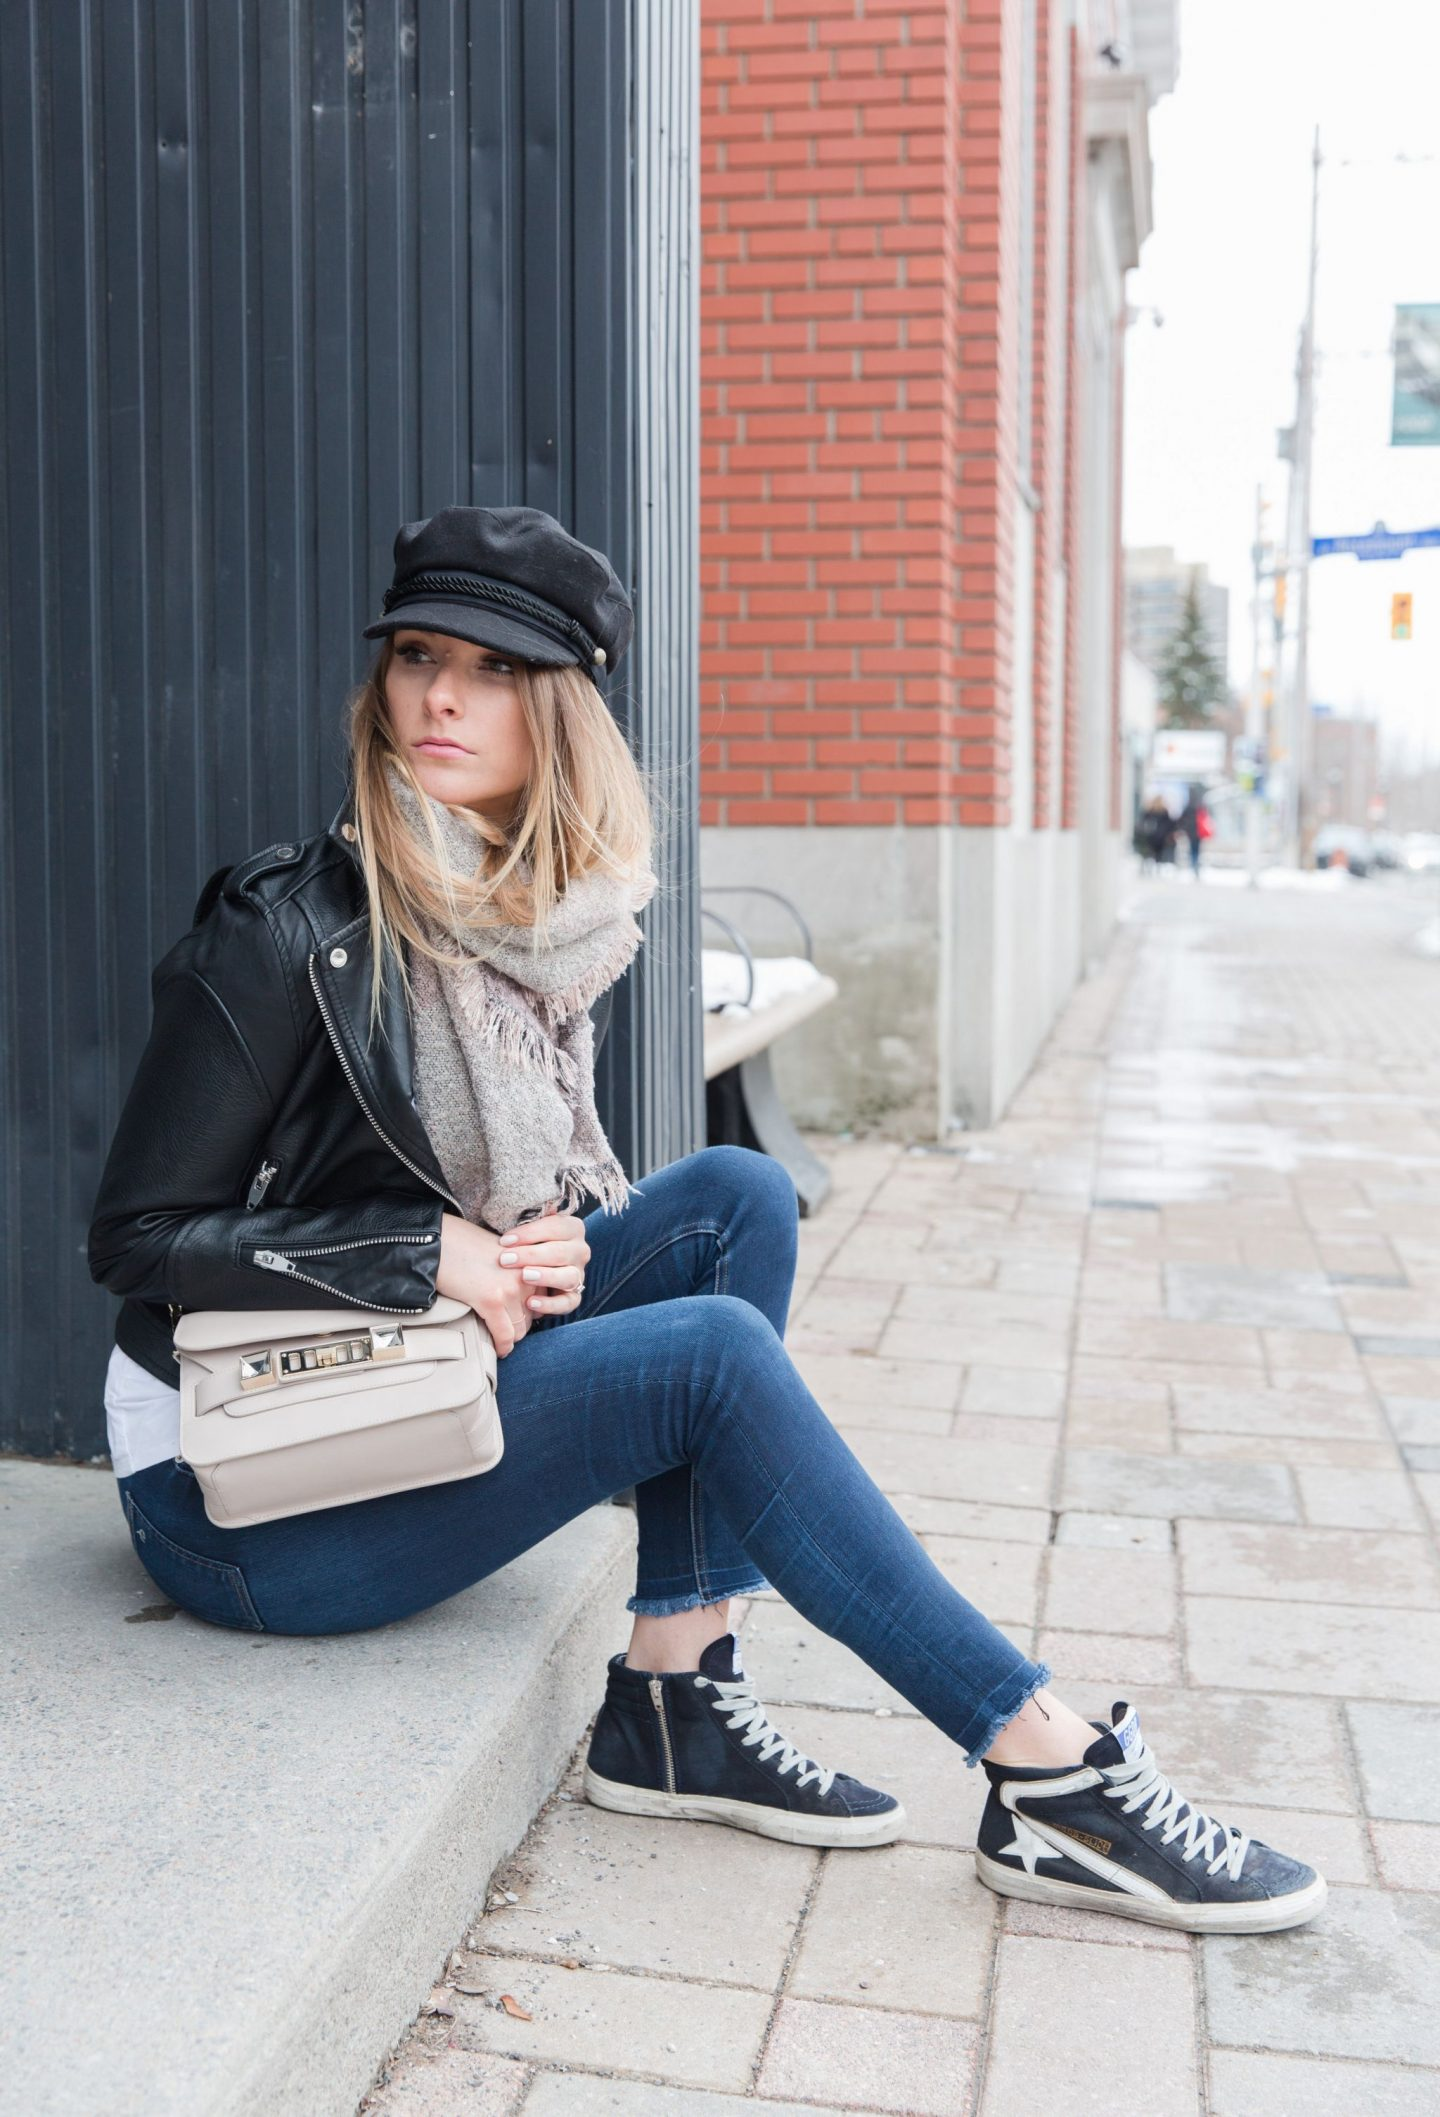 life with aco. Ottawa fashion blogger Amanda conquer, golden goose sneakers, Lorenza shoulder bag, baker boy hat cap